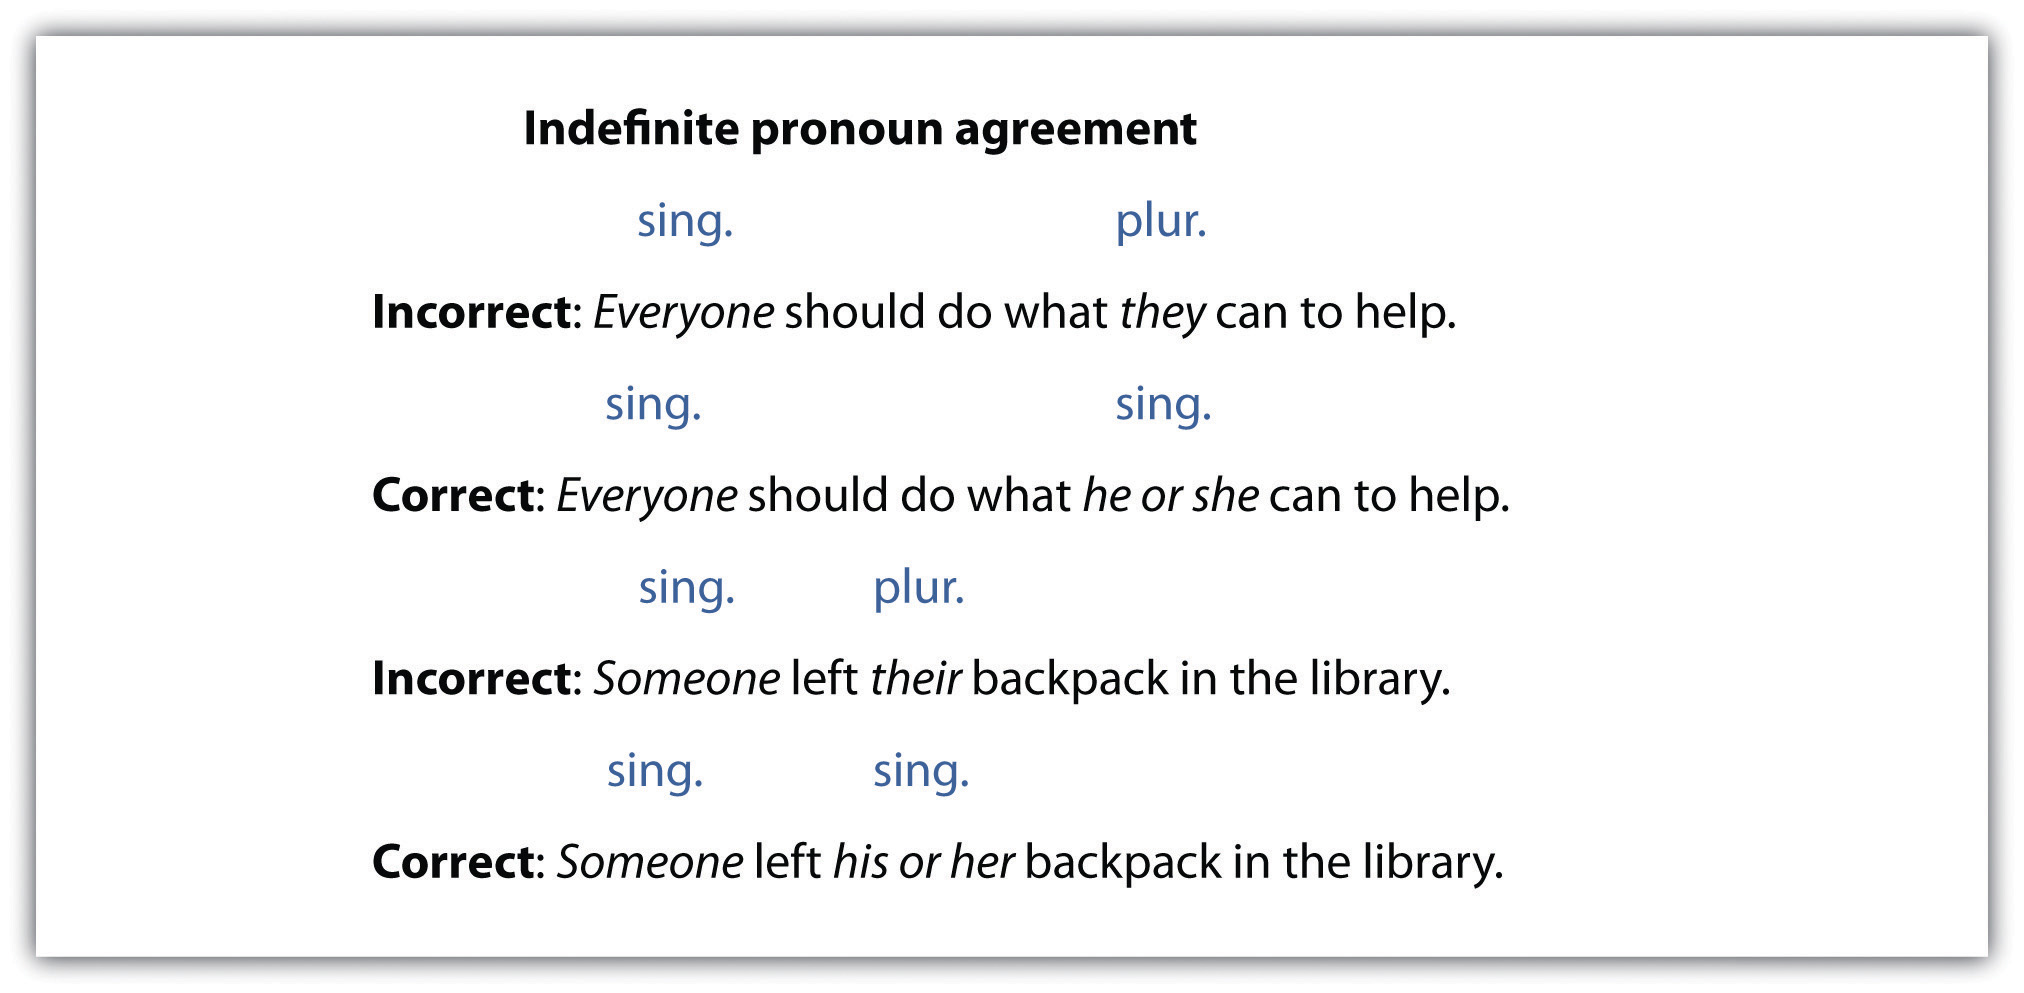 Worksheet Indefinte Pronoun pronouns indefinite and agreement